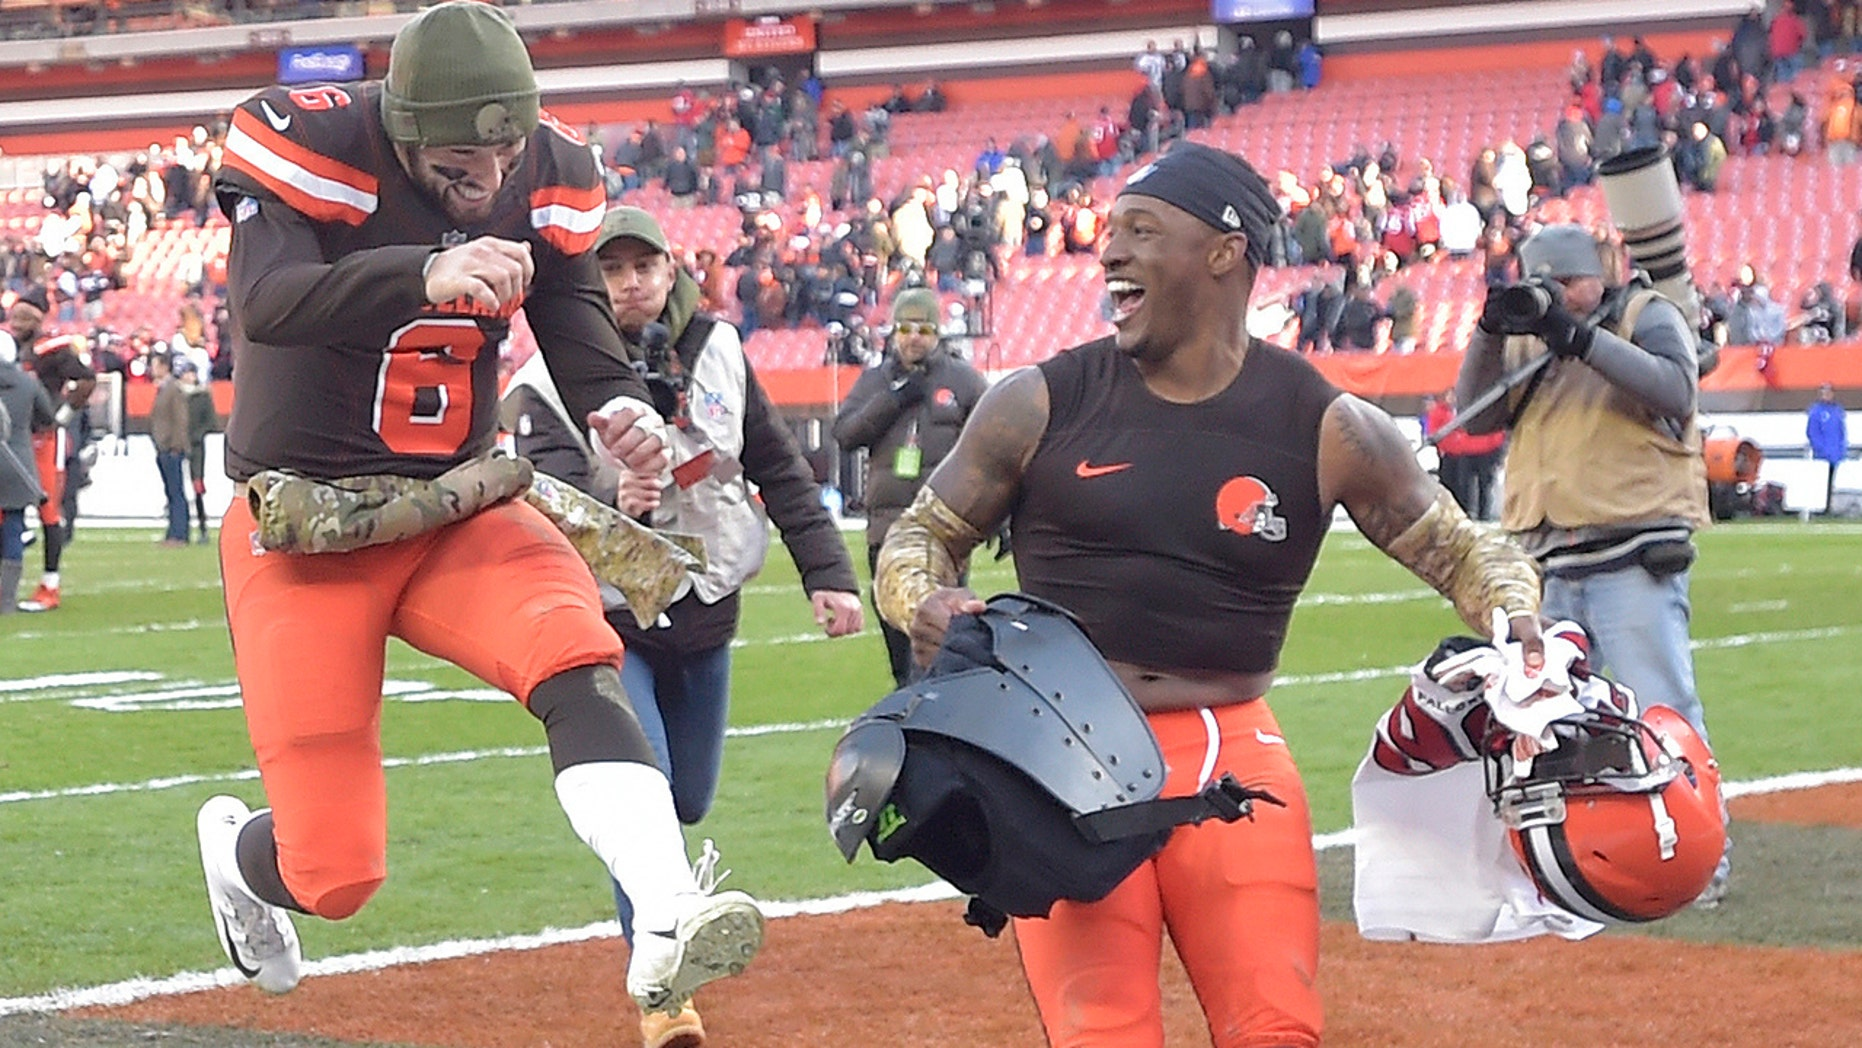 Mayfield has 4 TDs, Browns rout Bengals 35-20 for road win